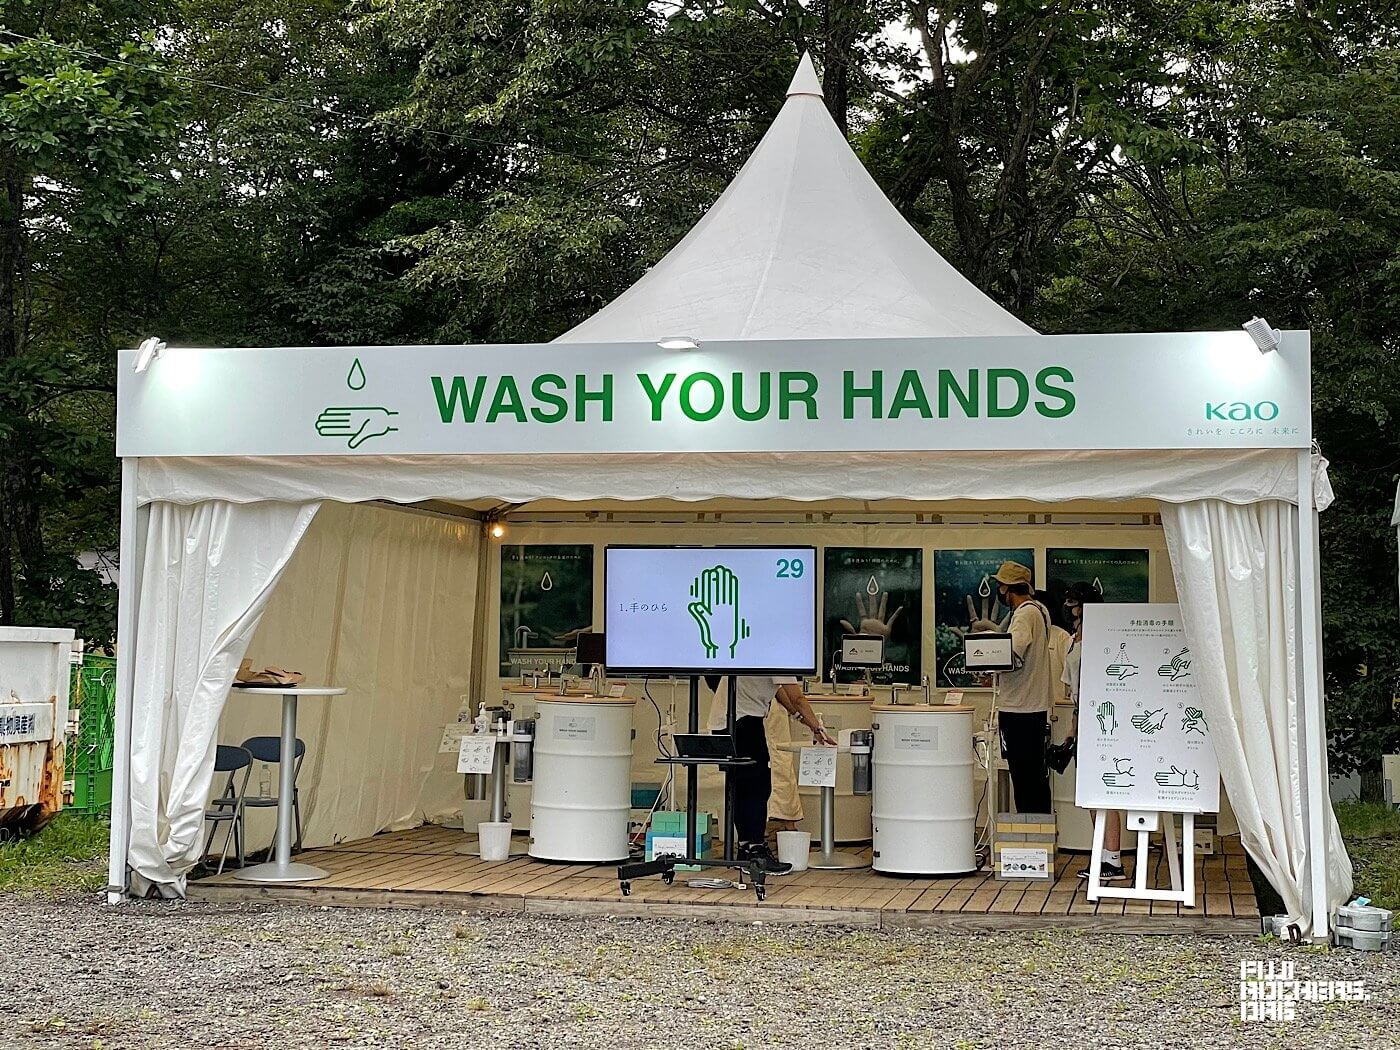 New Health and Safety Measures at Fuji Rock Festival '21